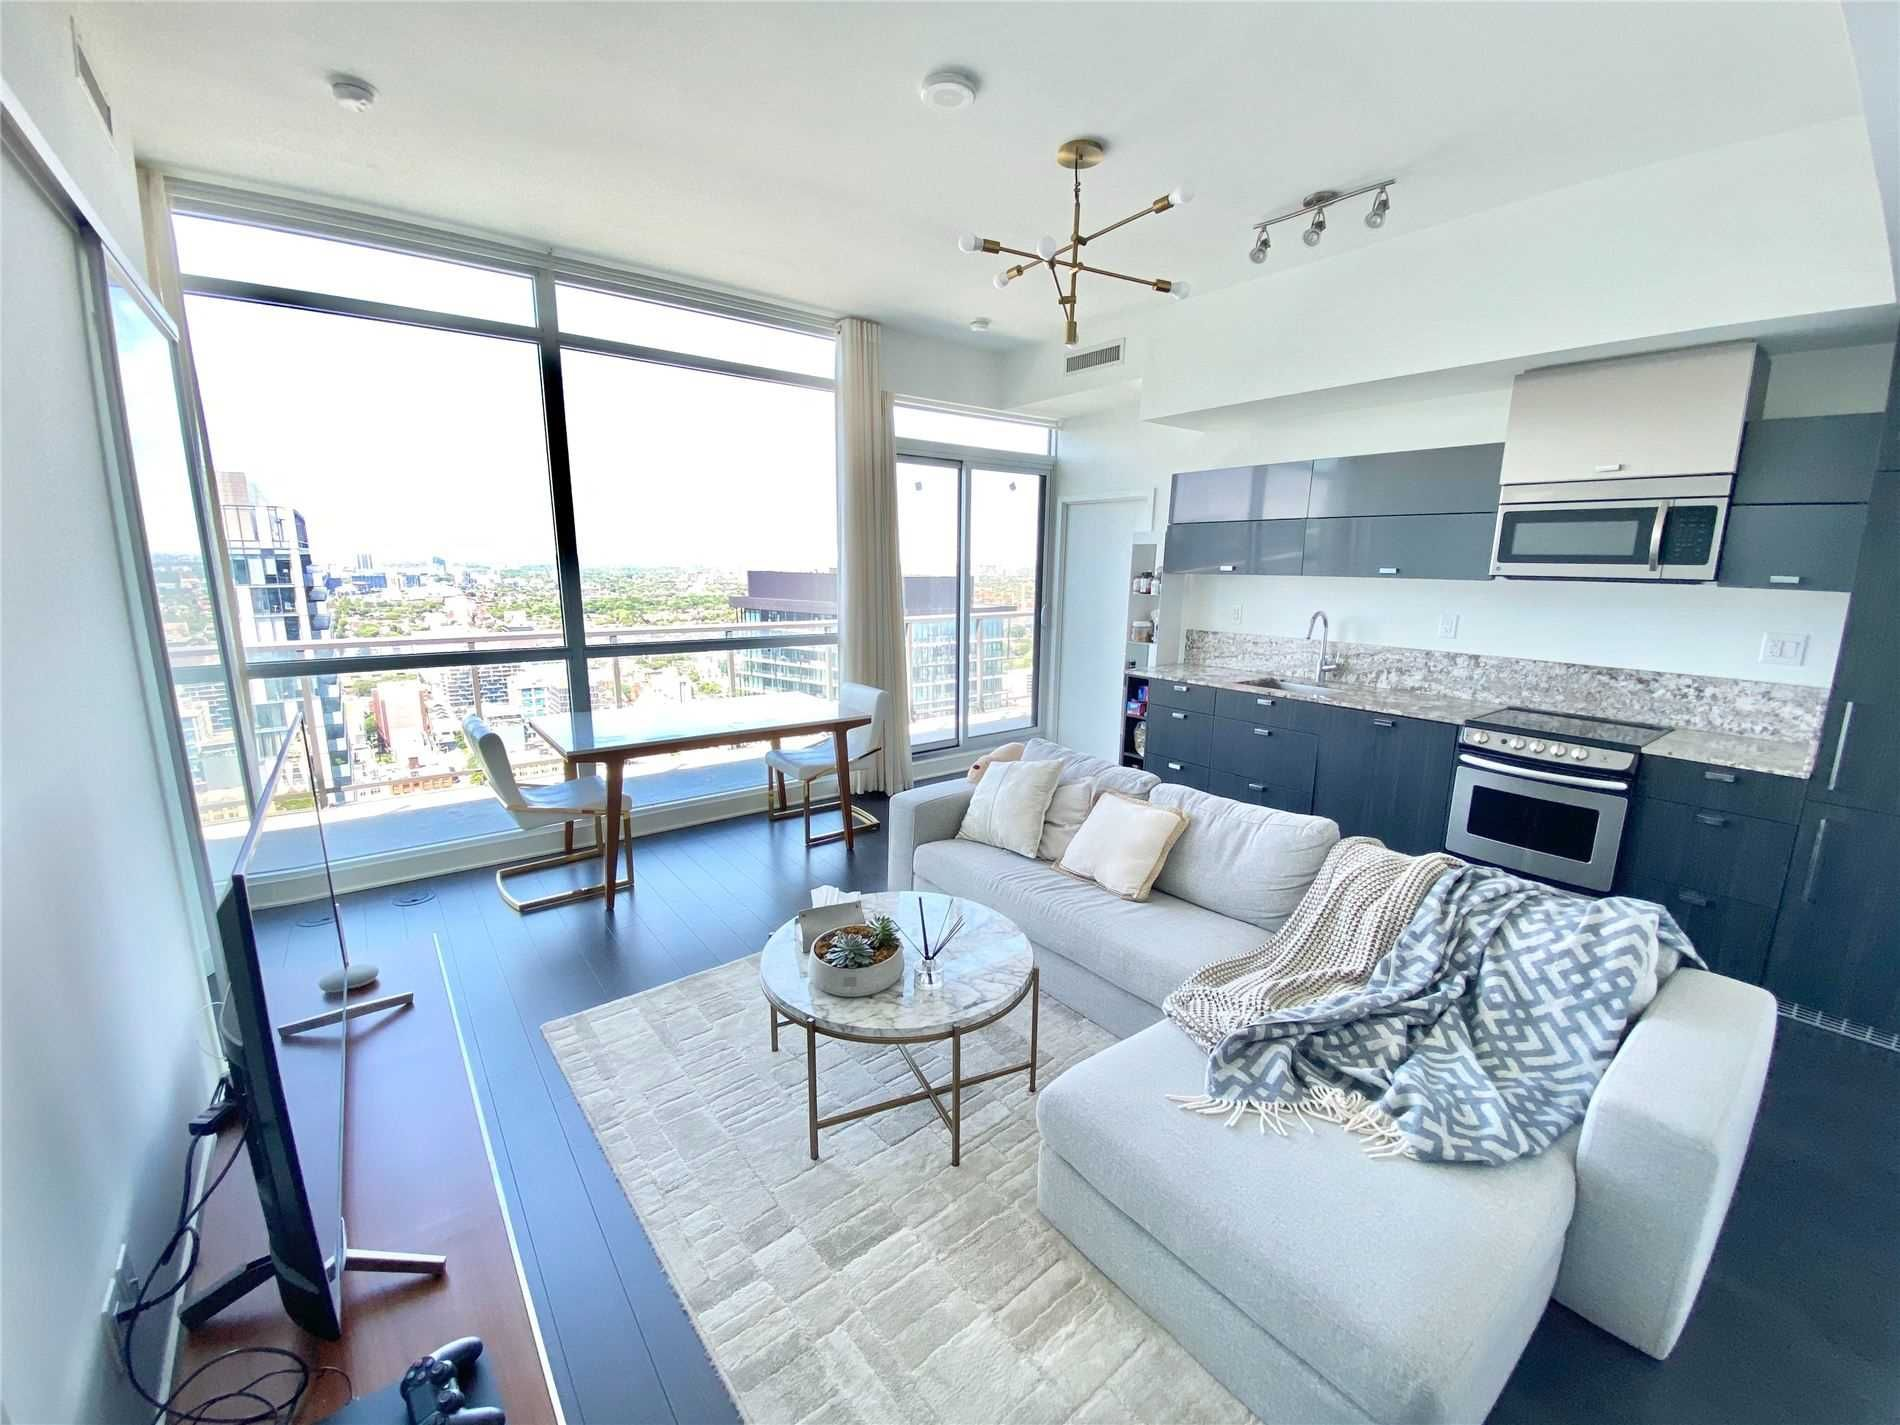 290 Adelaide St W, unit 4102 for rent in Toronto - image #2